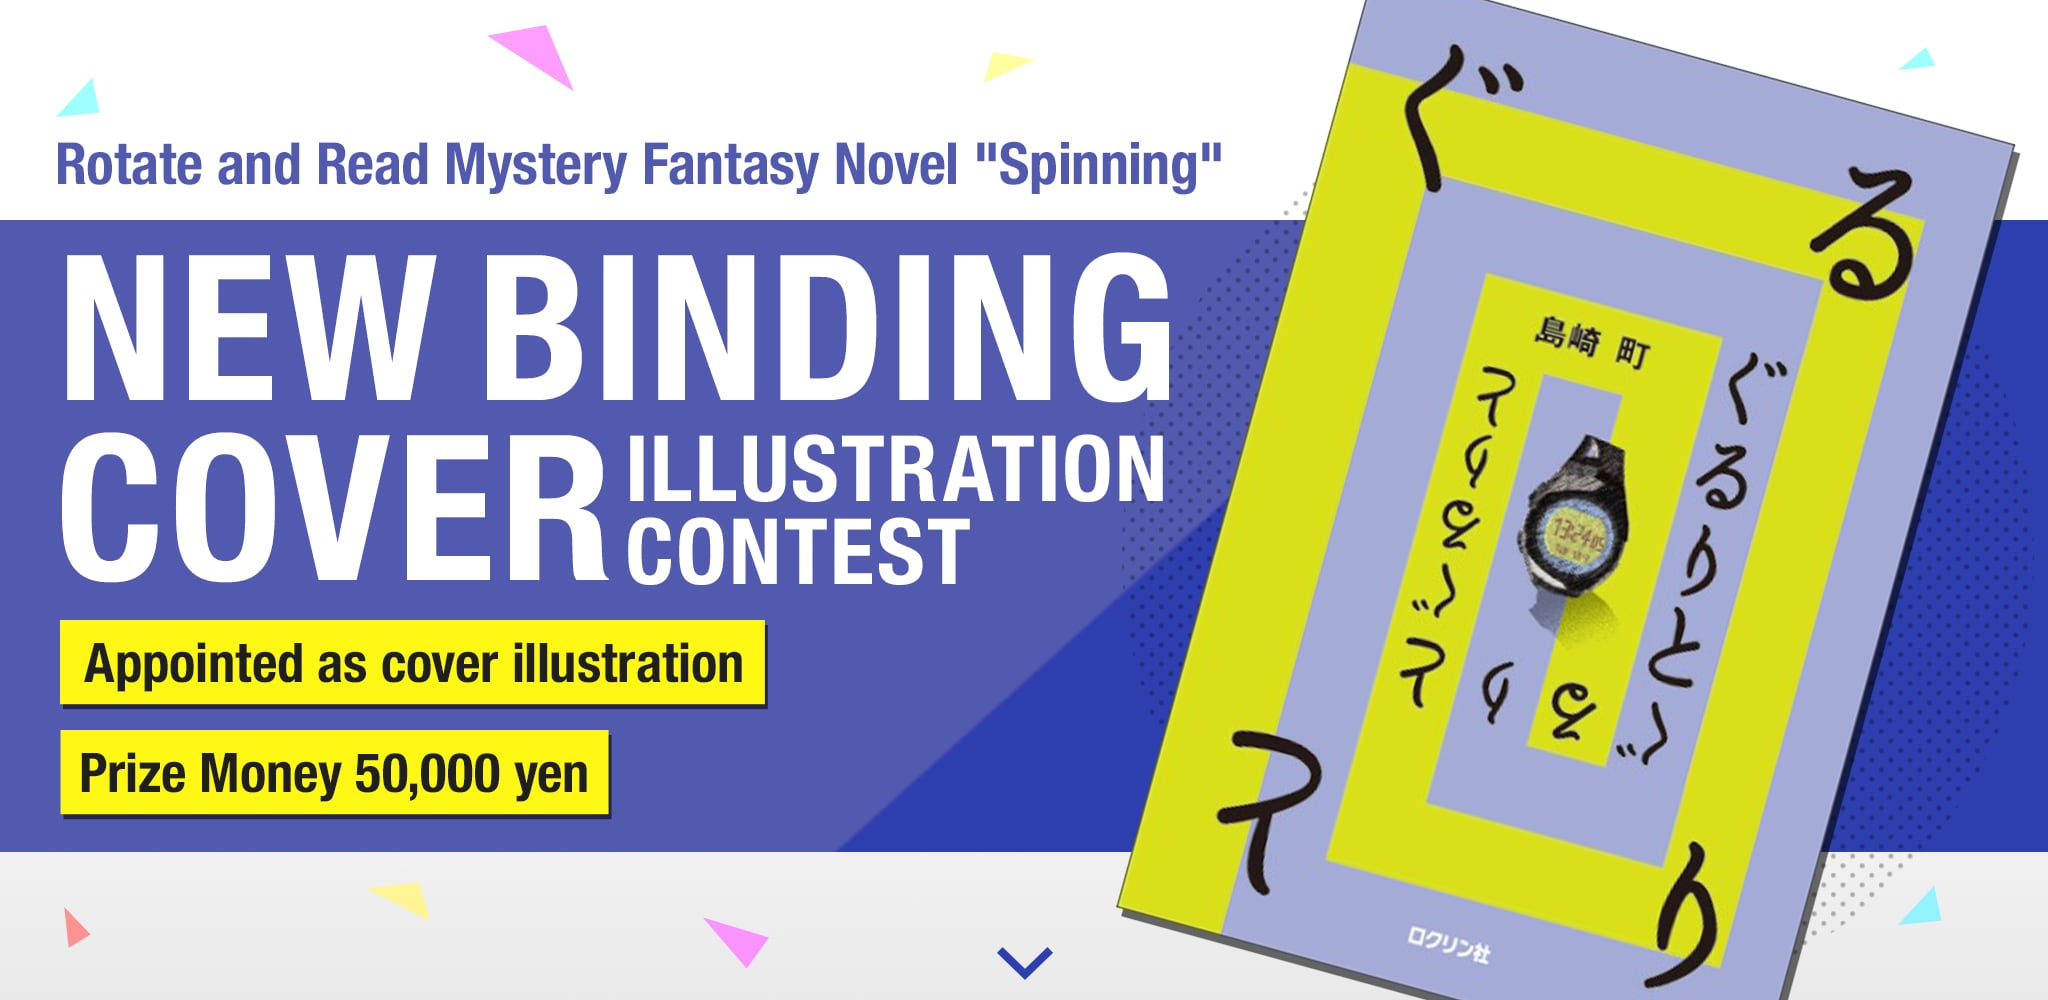 """Rotate and Read Mystery Fantasy Novel """"Spinning"""" New Cover Illustration Contest 